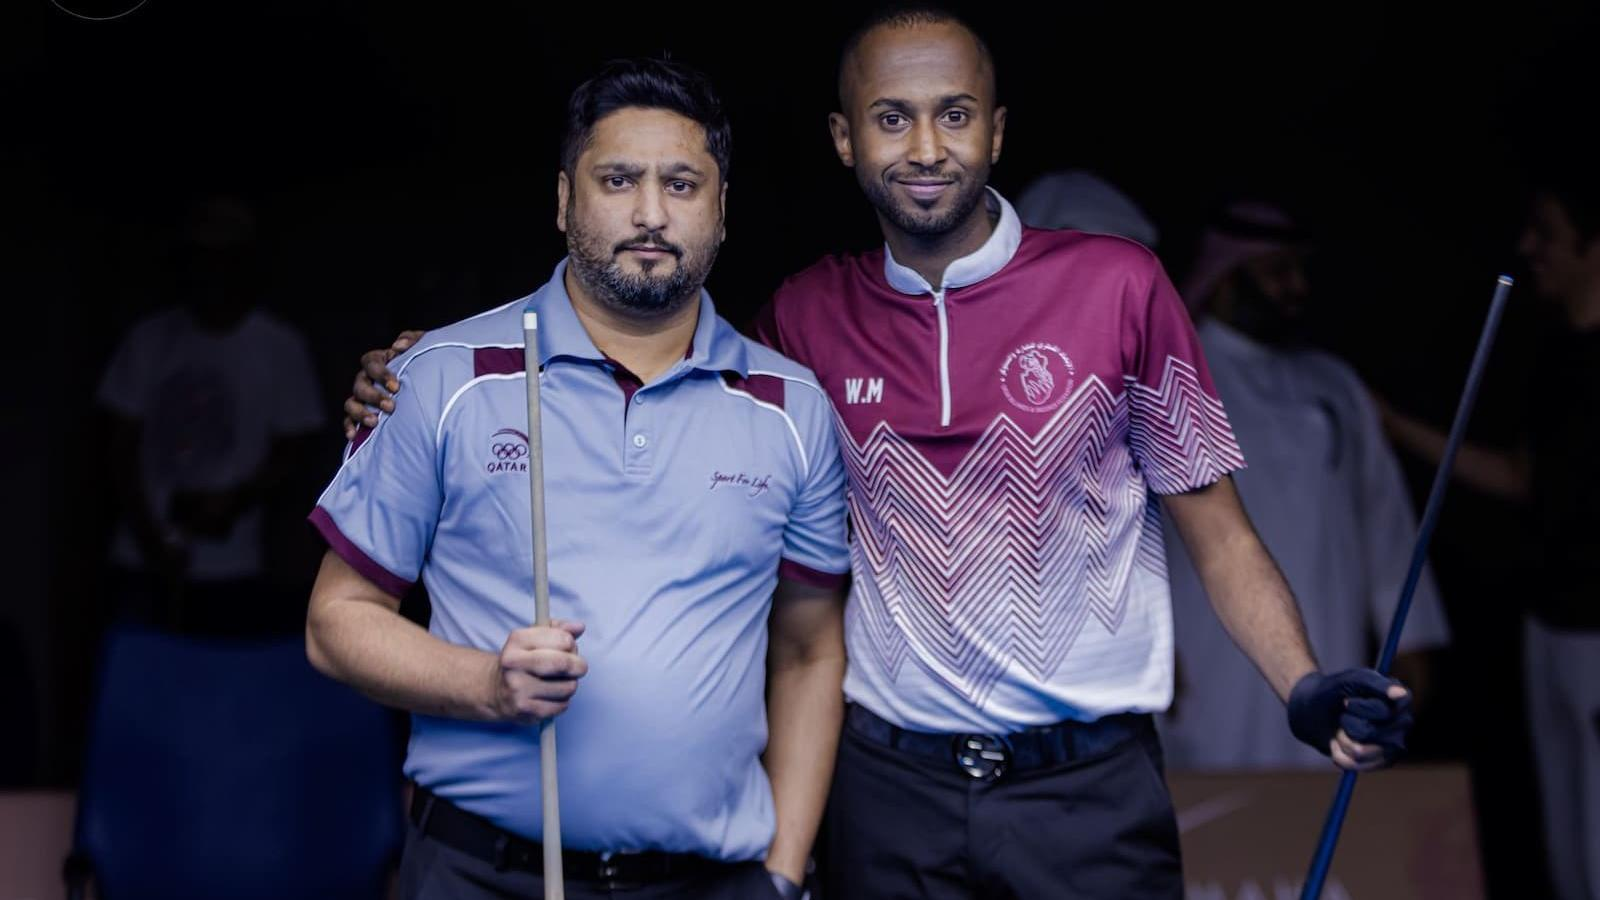 Qatar's Hussein defeats compatriot Majed to win billiards 9-Ball gold medal at Gulf championship